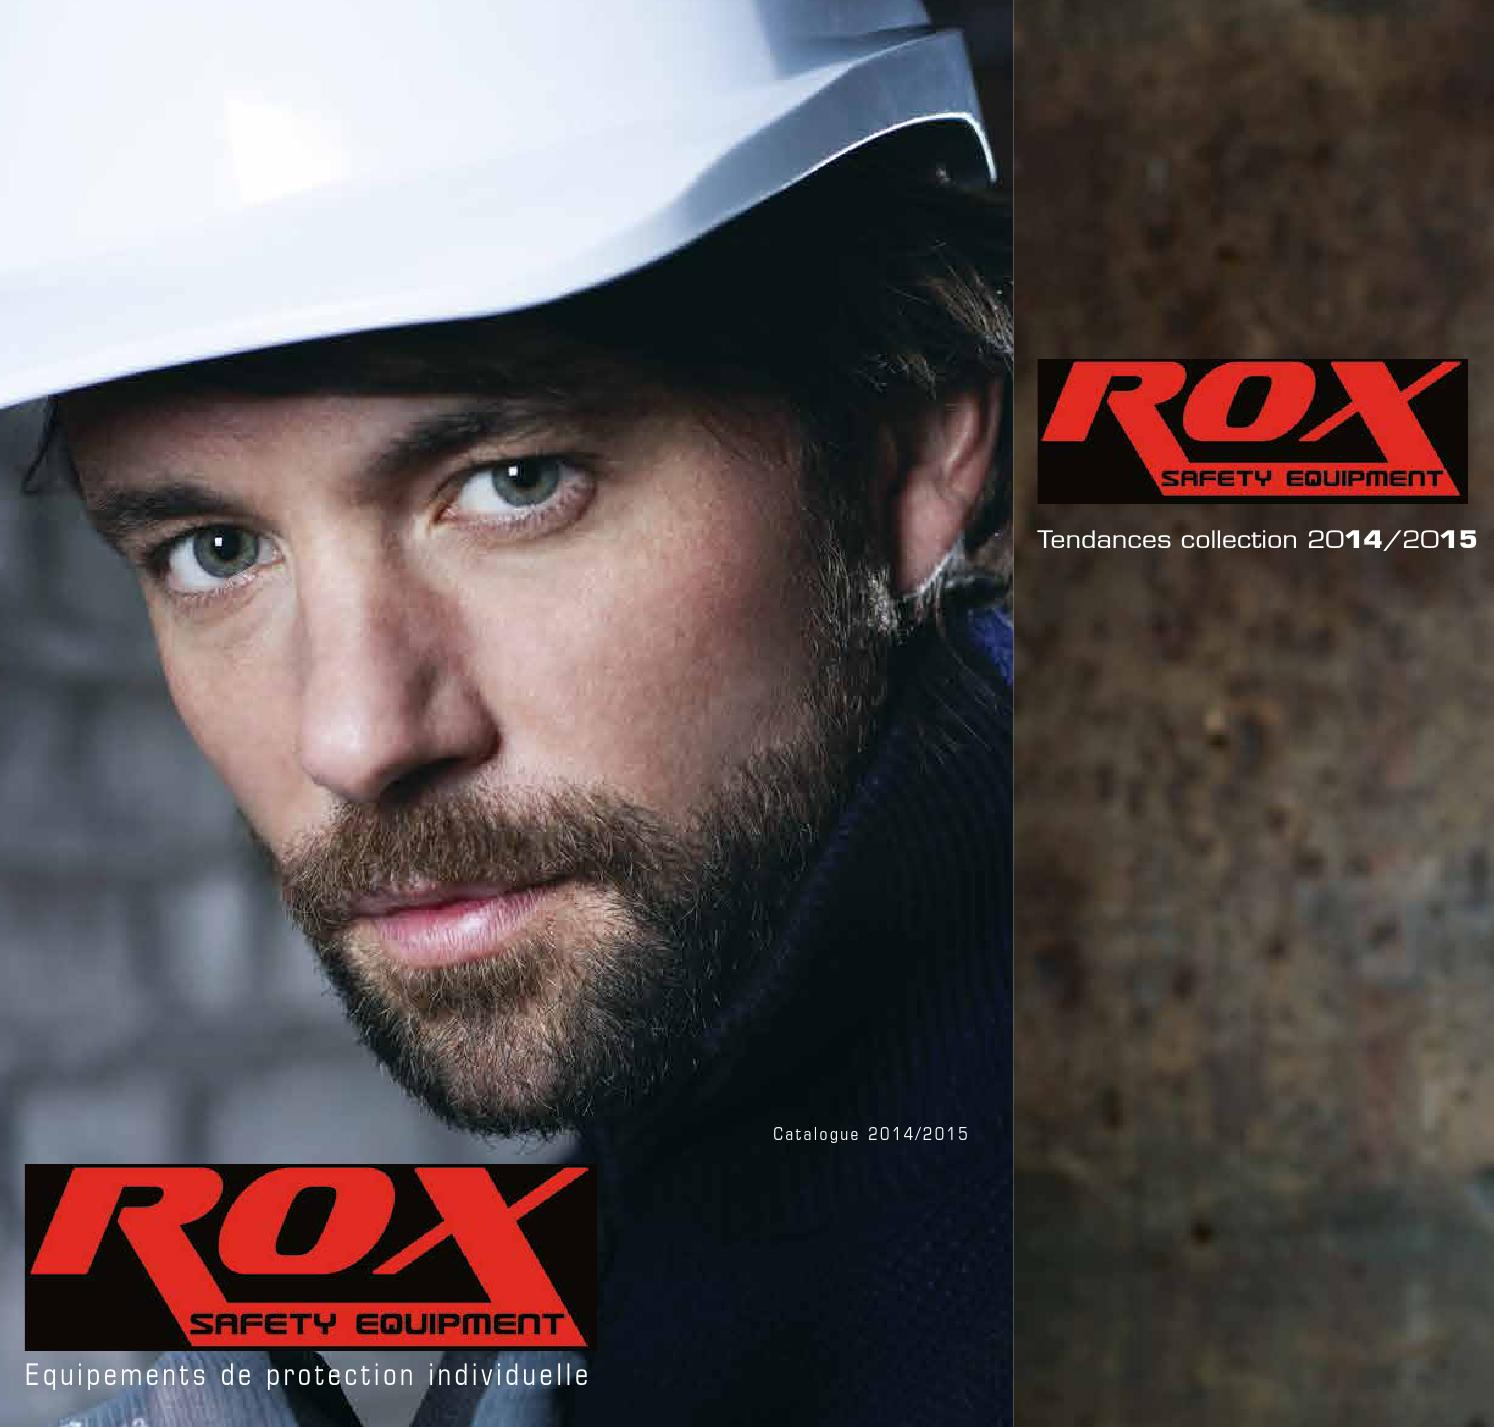 Rox catalogue 2015 by Nathan Vandevyver - issuu 274363634c40